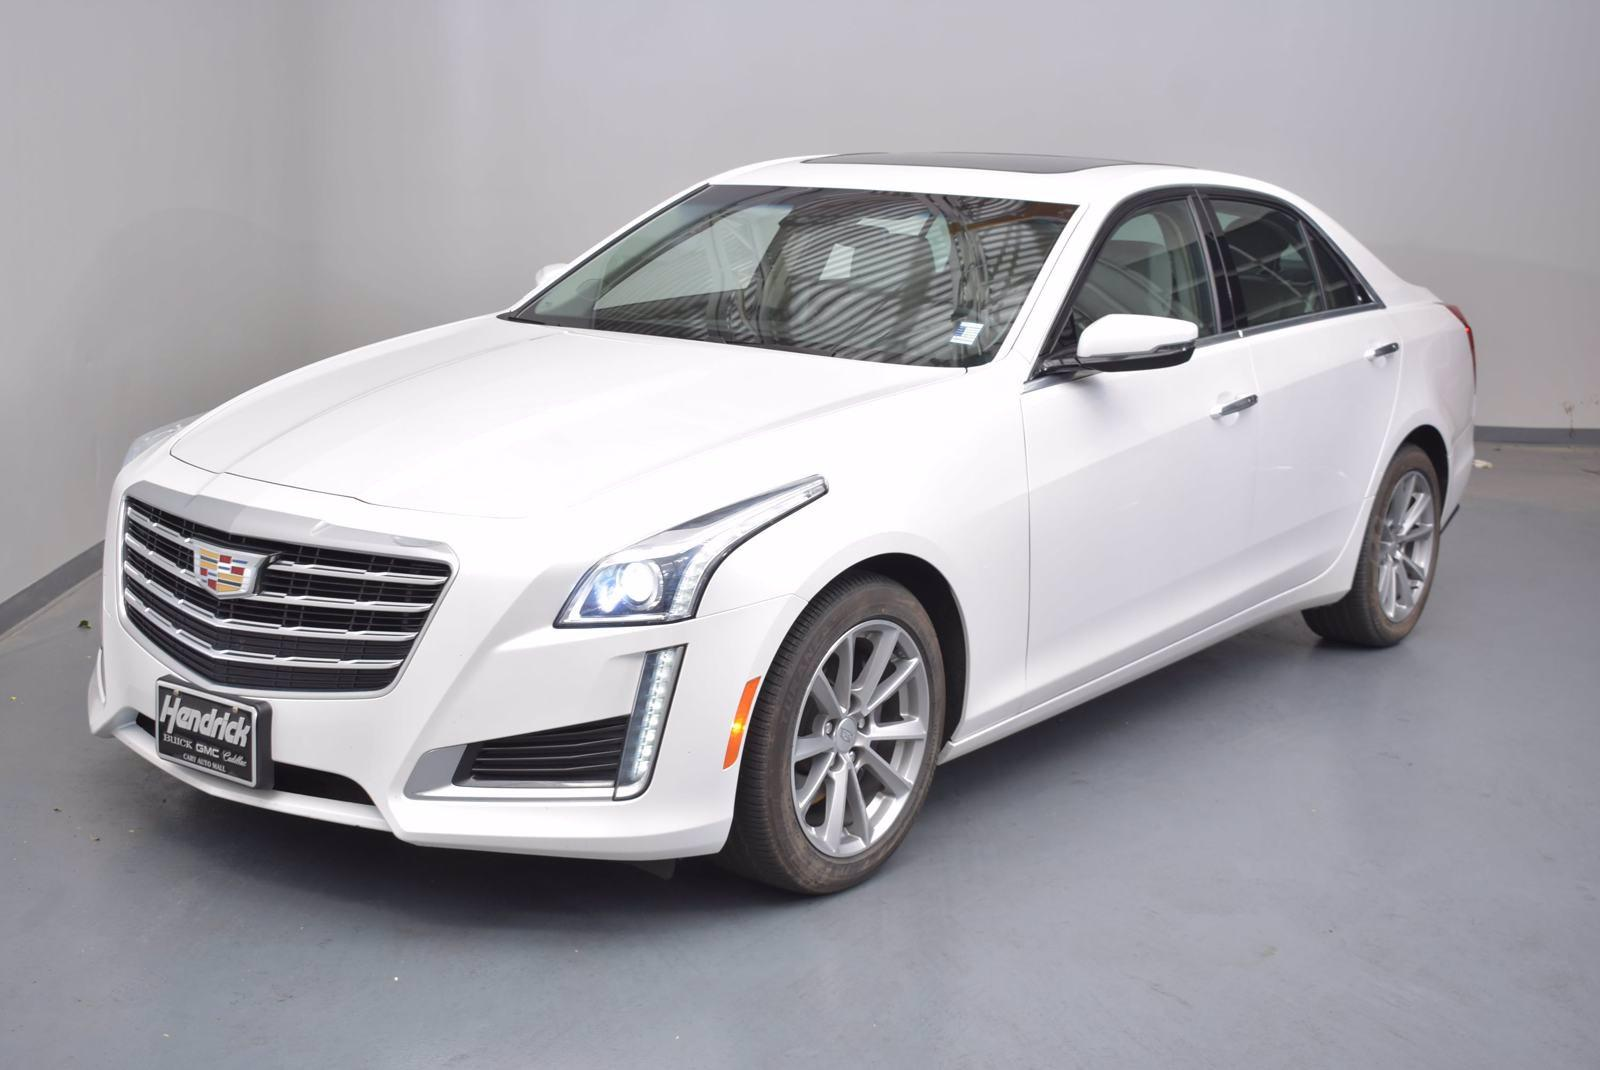 2019 Cadillac CTS Sedan Vehicle Photo in Cary, NC 27511